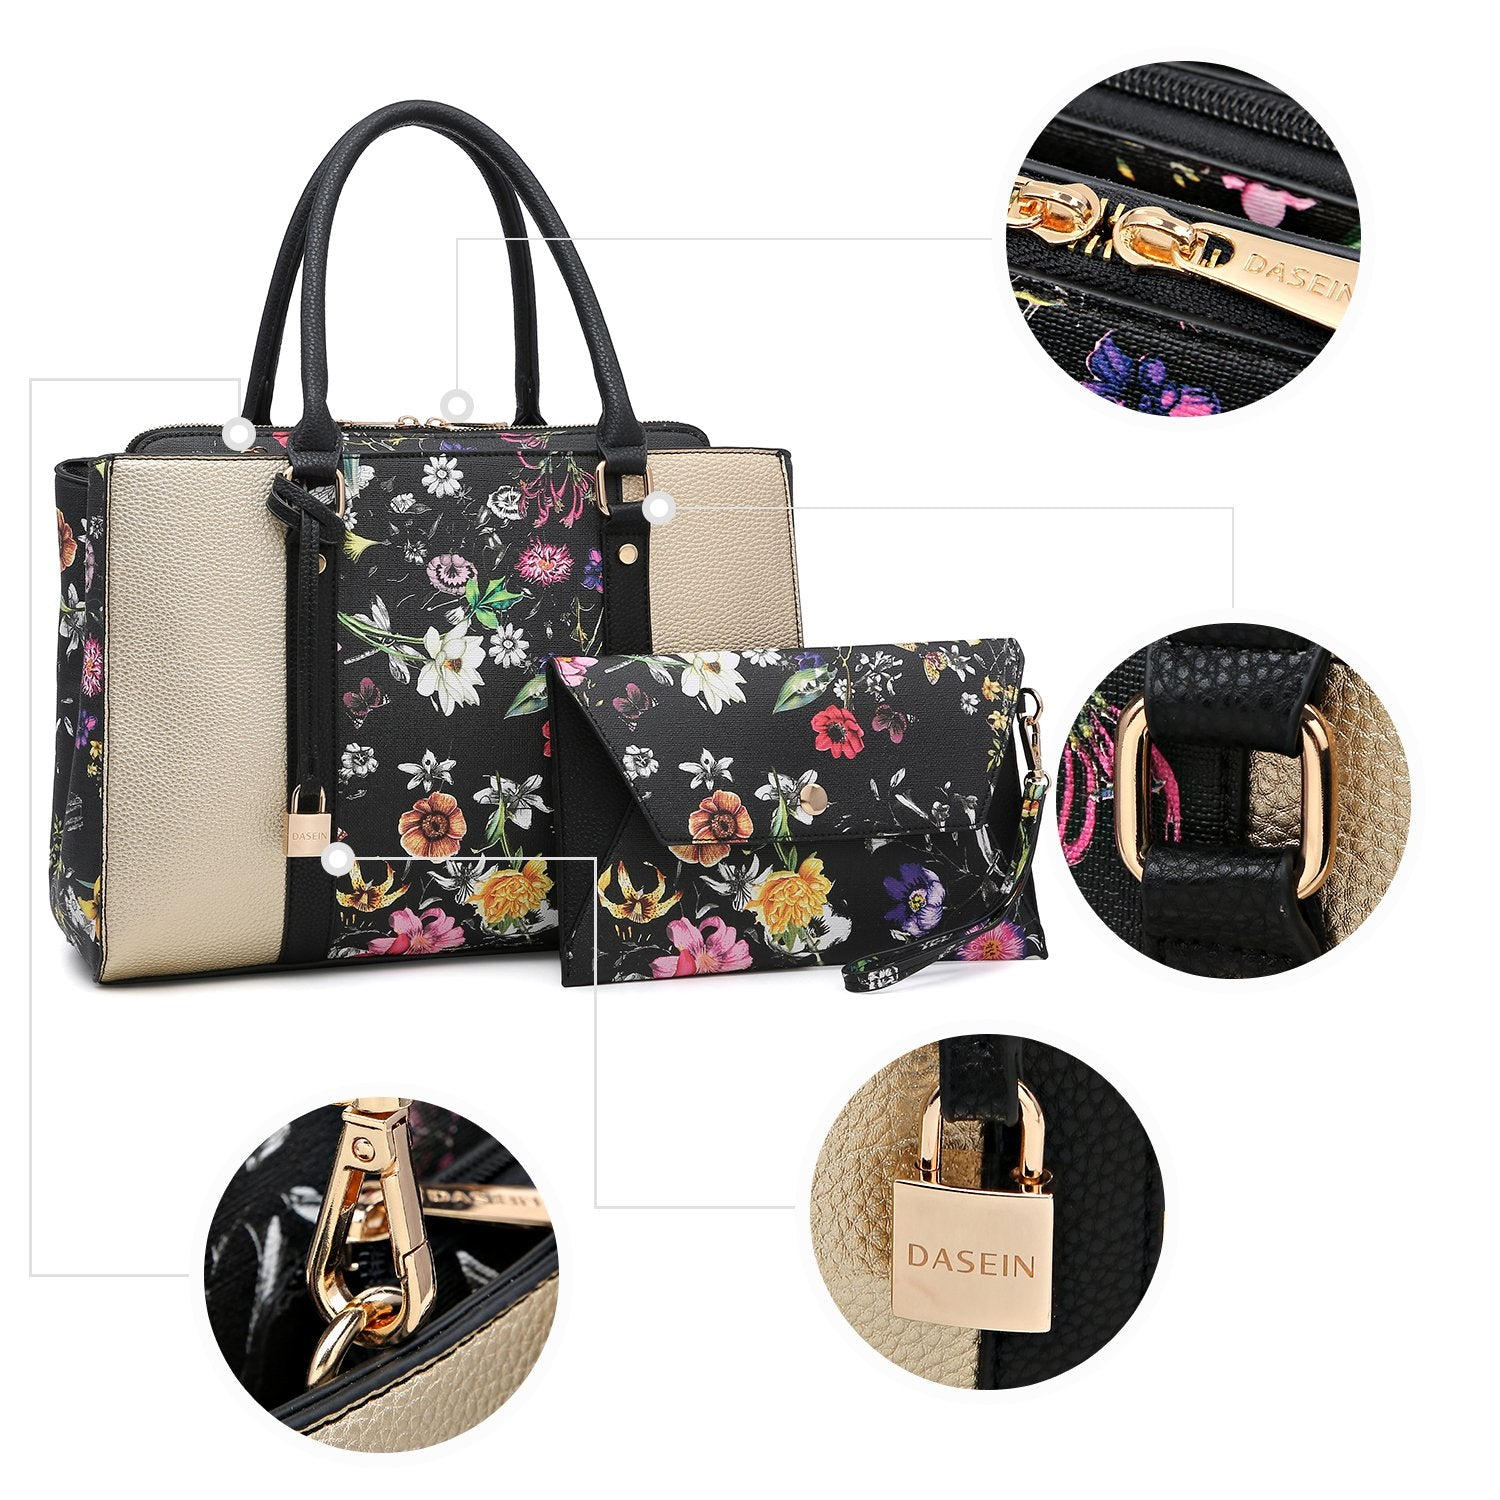 Padlock Two-Tone Satchel with Matching Wristlet